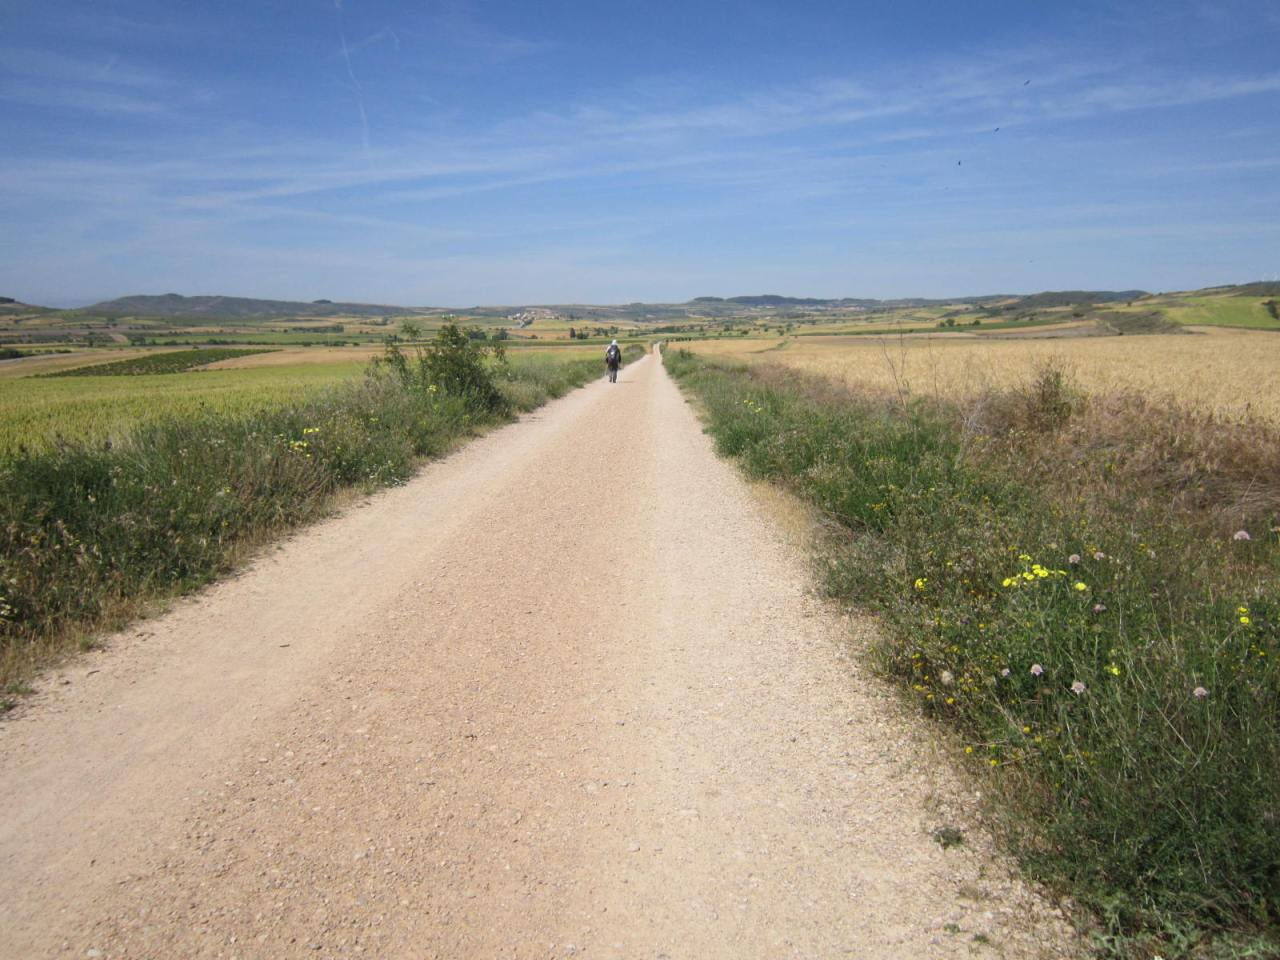 The path to Torres del Rio on the Camino Frances/FrenchWay